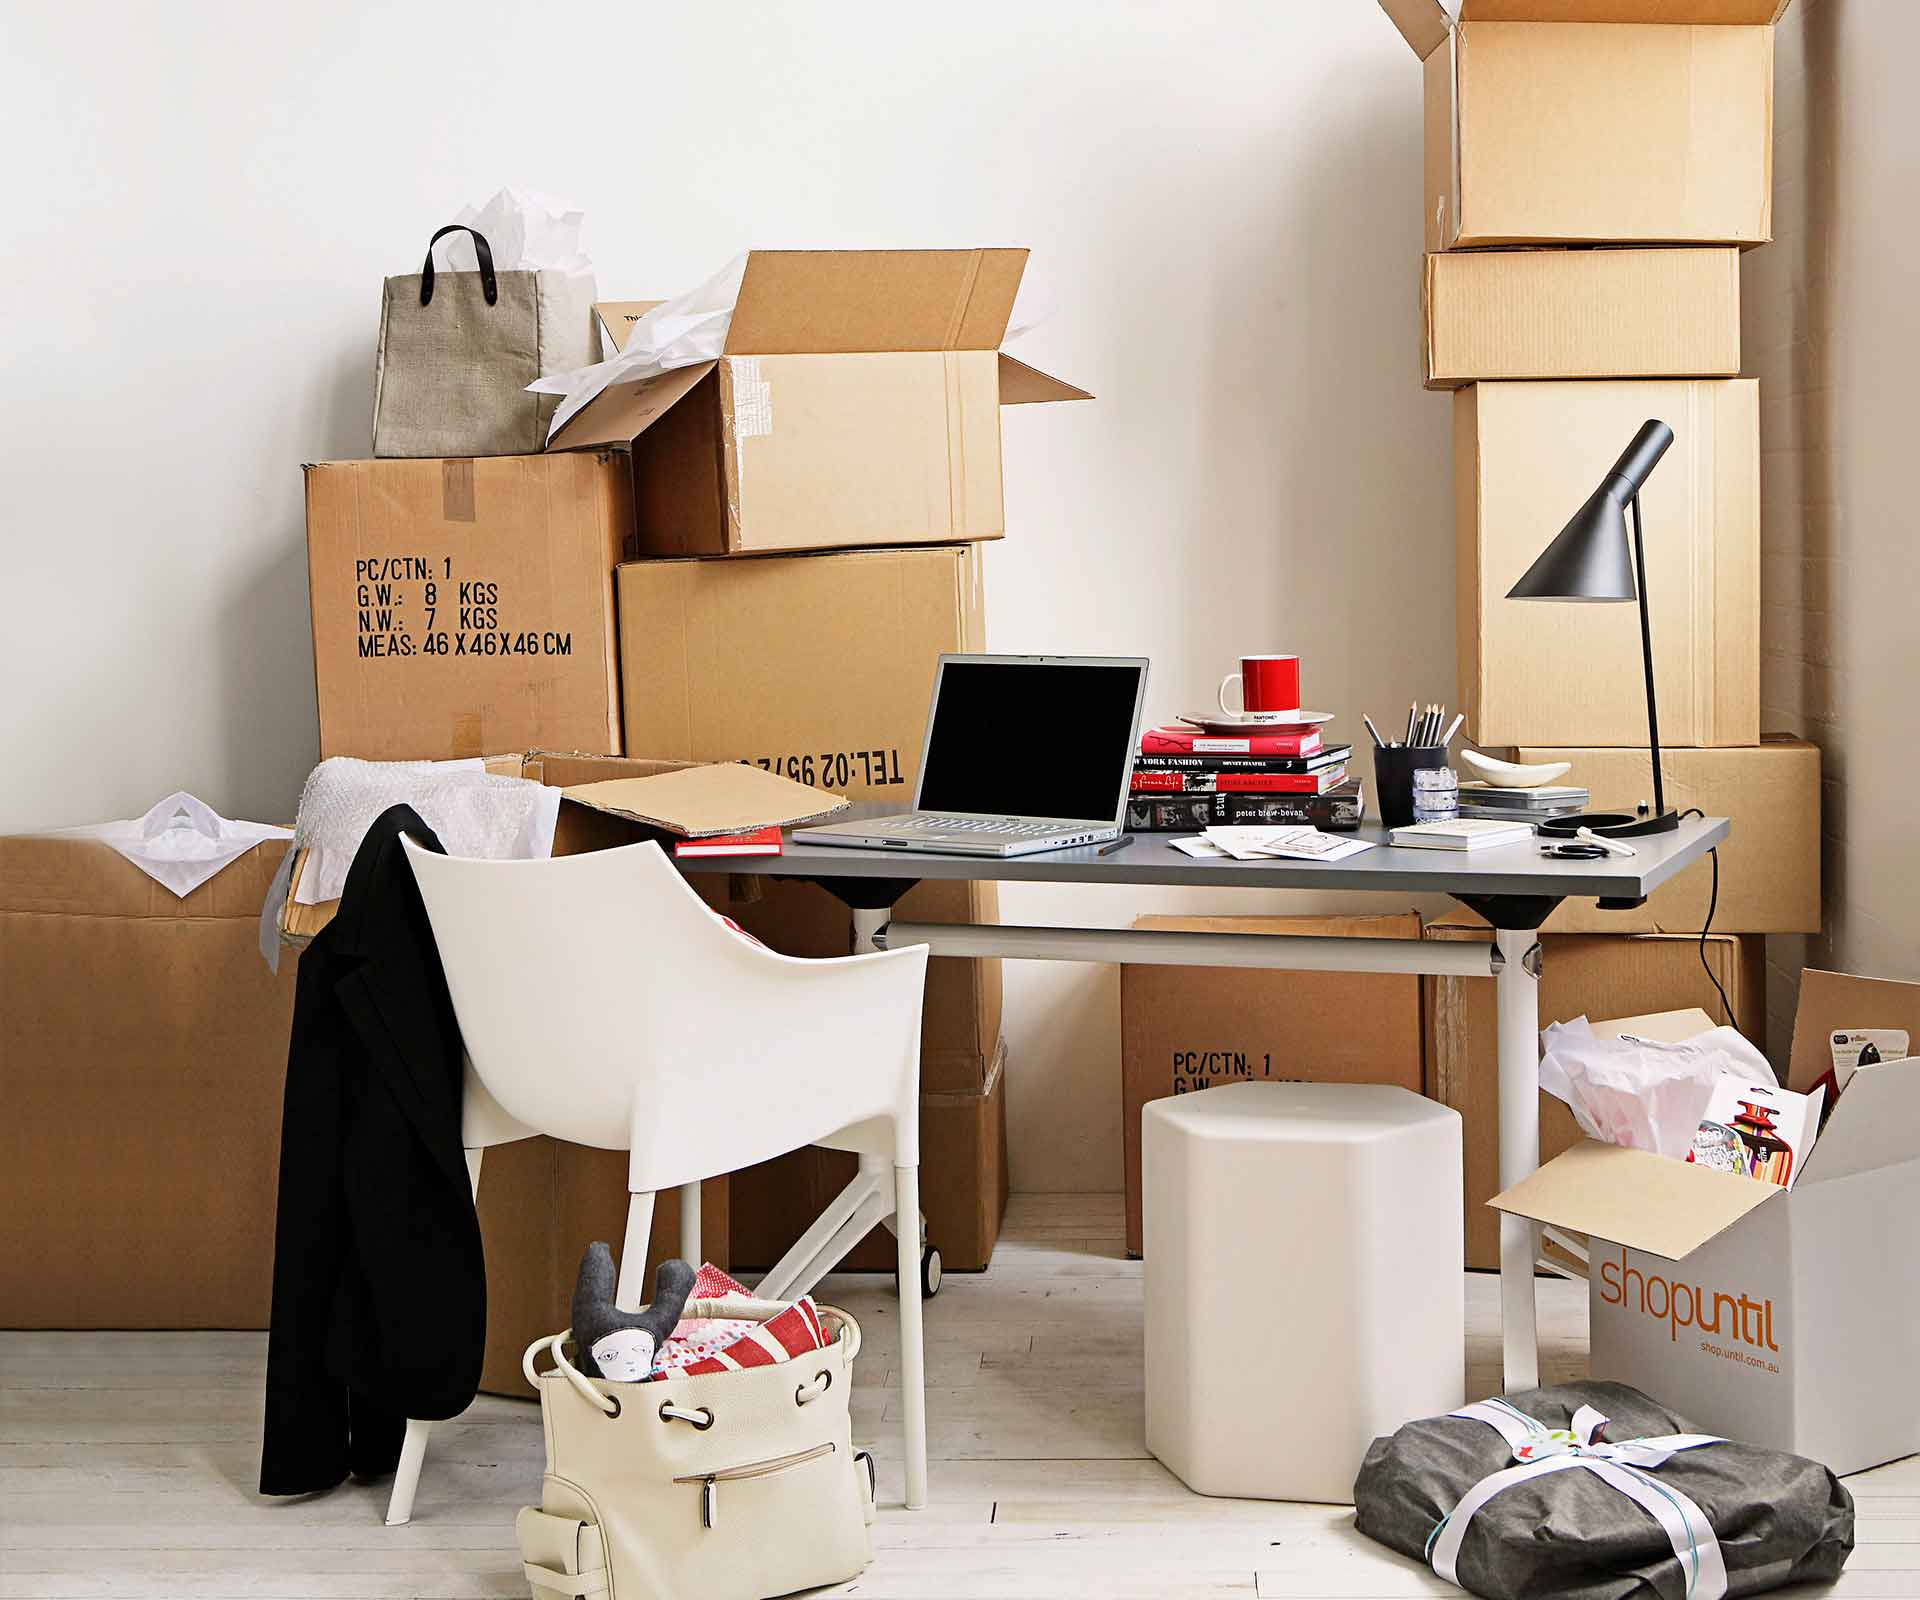 Moving house checklist: a comprehensive guide to packing for a move